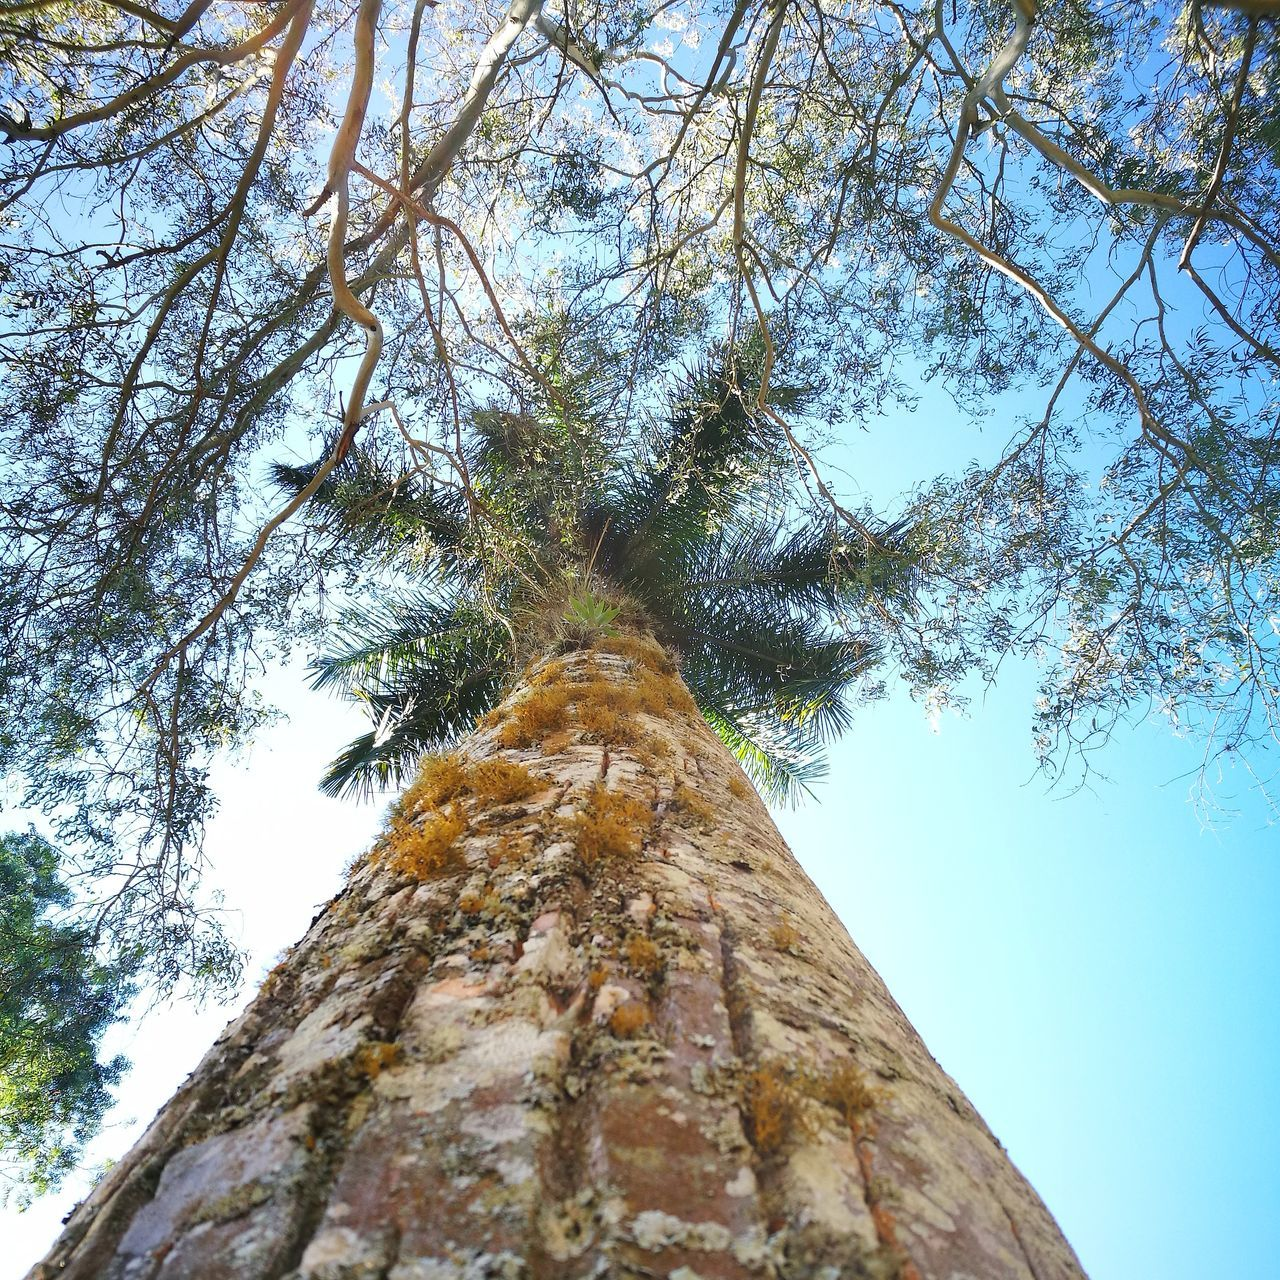 915 Tree Nature Low Angle View Sky Beauty In Nature Growth No People Sunlight Directly Below Outdoors Tree Trunk Scenics Clear Sky Day Close-up